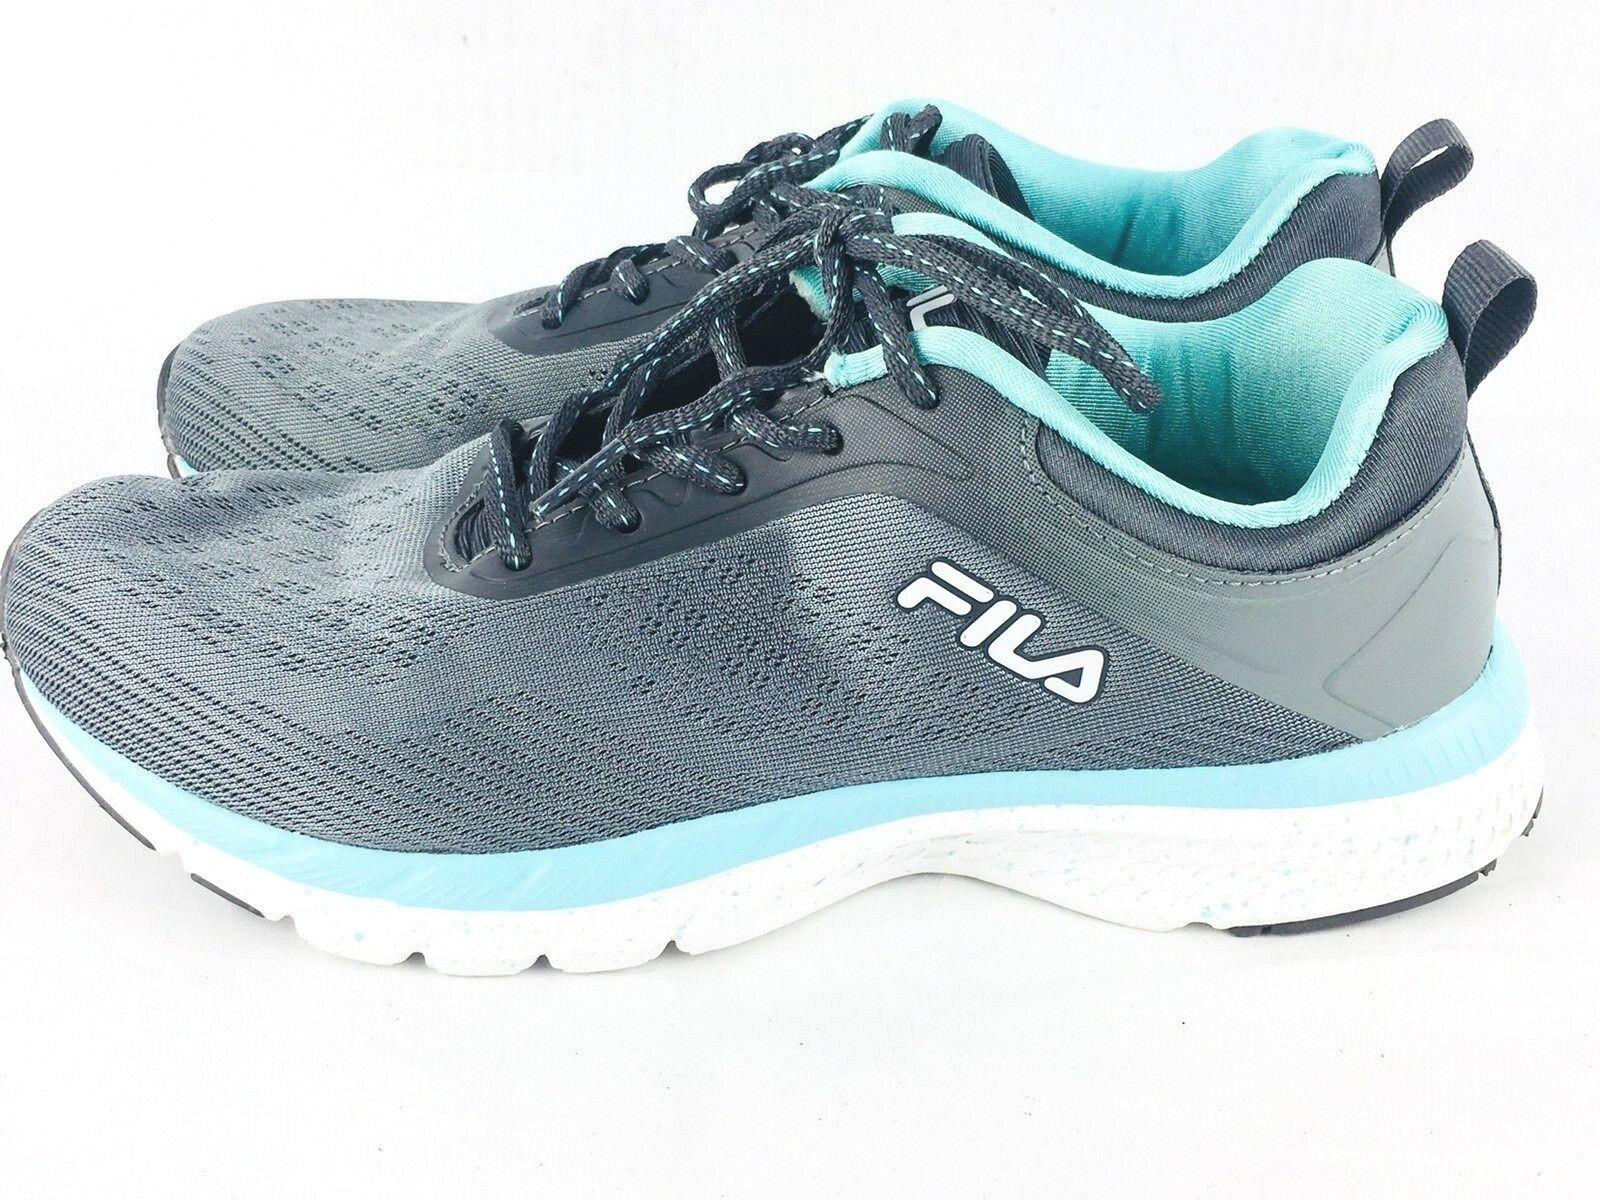 Fila Women's 9 Memory Outreach Shoes Foam Athletic Gray Mint Price reduction The latest discount shoes for men and women